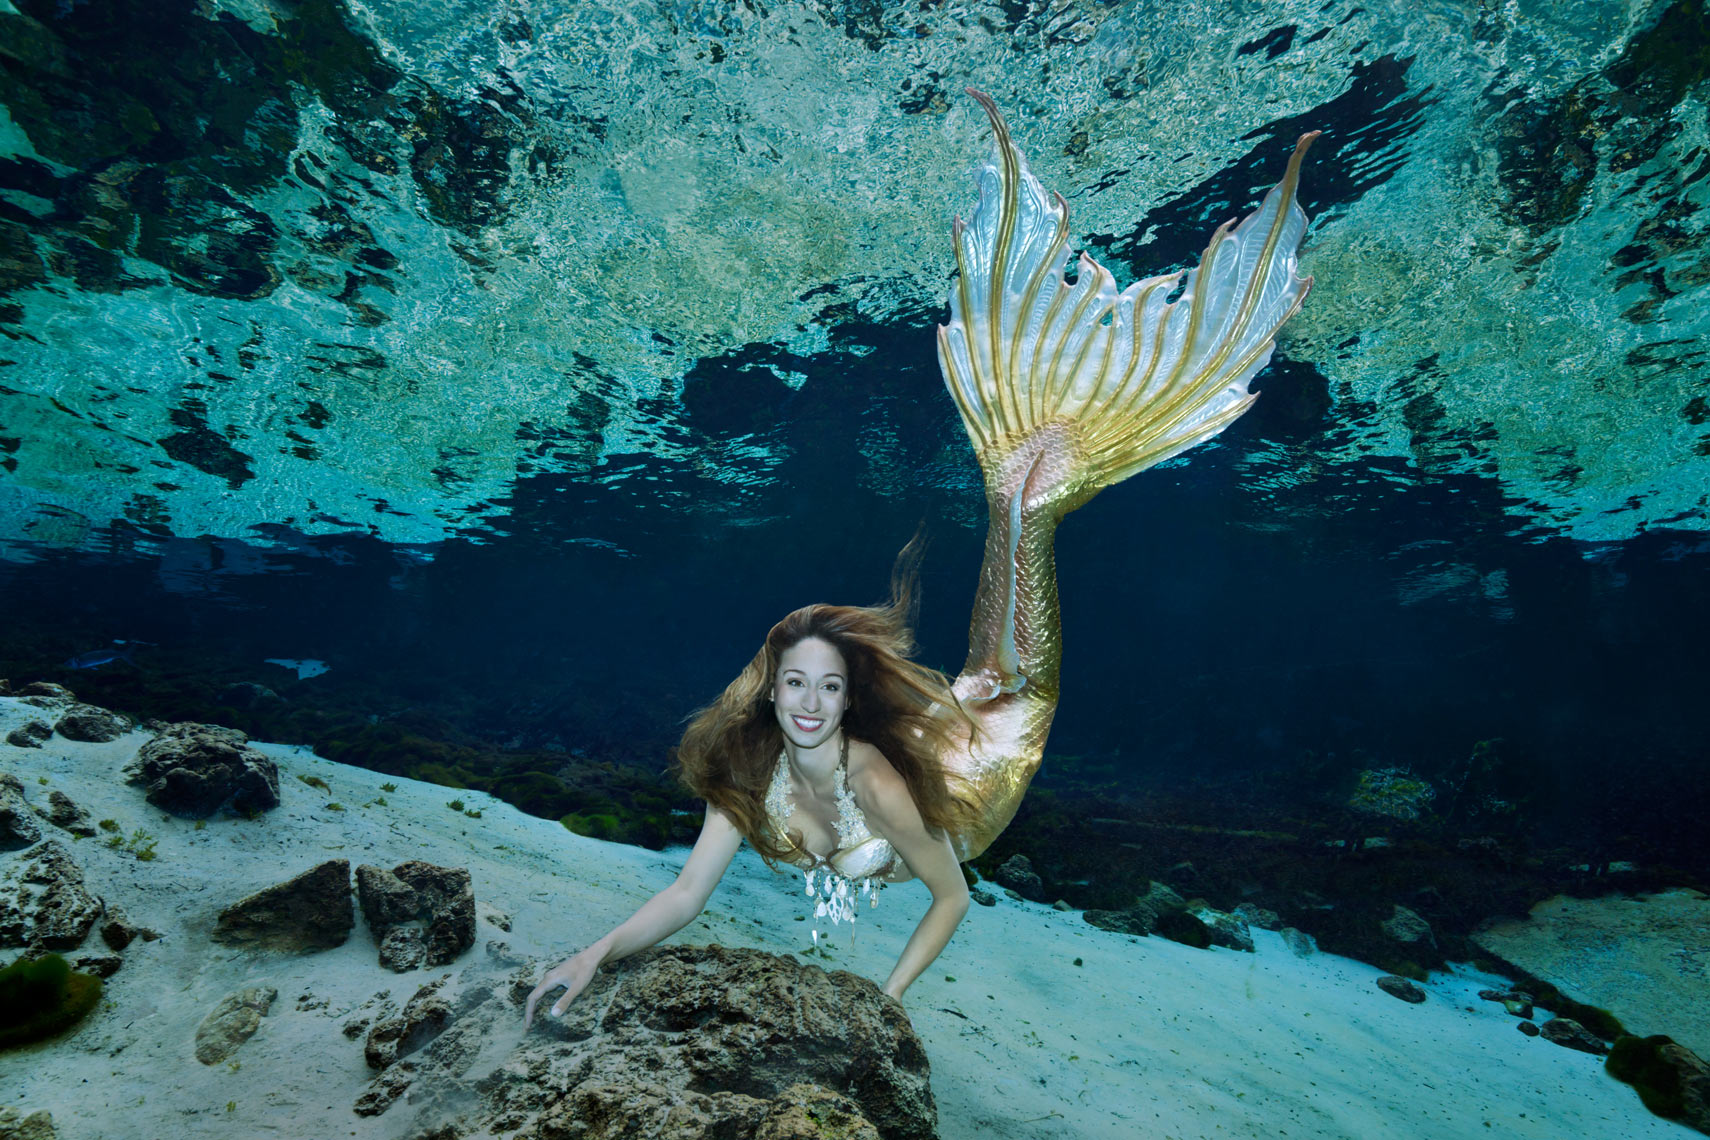 Mermaid-Danielle